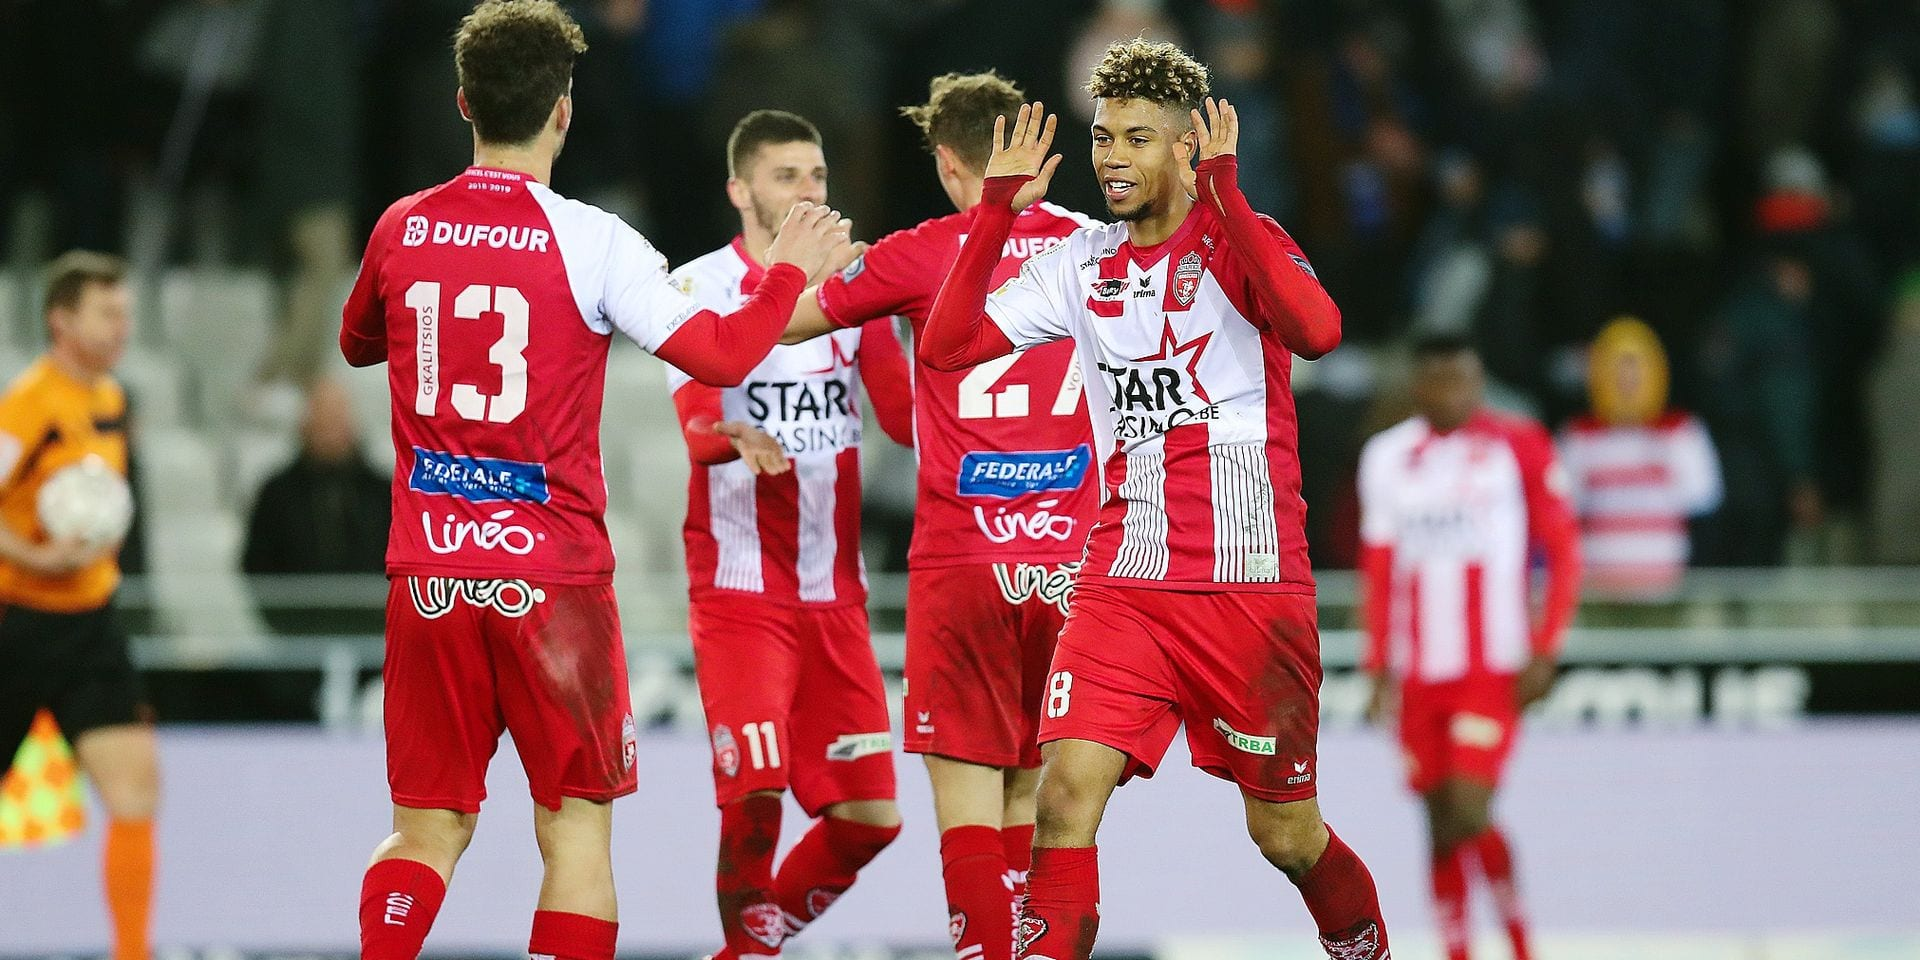 Mouscron's players celebrate after winning a soccer game between Club Brugge KV and Royal Excel Mouscron, Sunday 17 March 2019 in Brugge, on the 30th day of the 'Jupiler Pro League' Belgian soccer championship season 2018-2019. BELGA PHOTO BRUNO FAHY